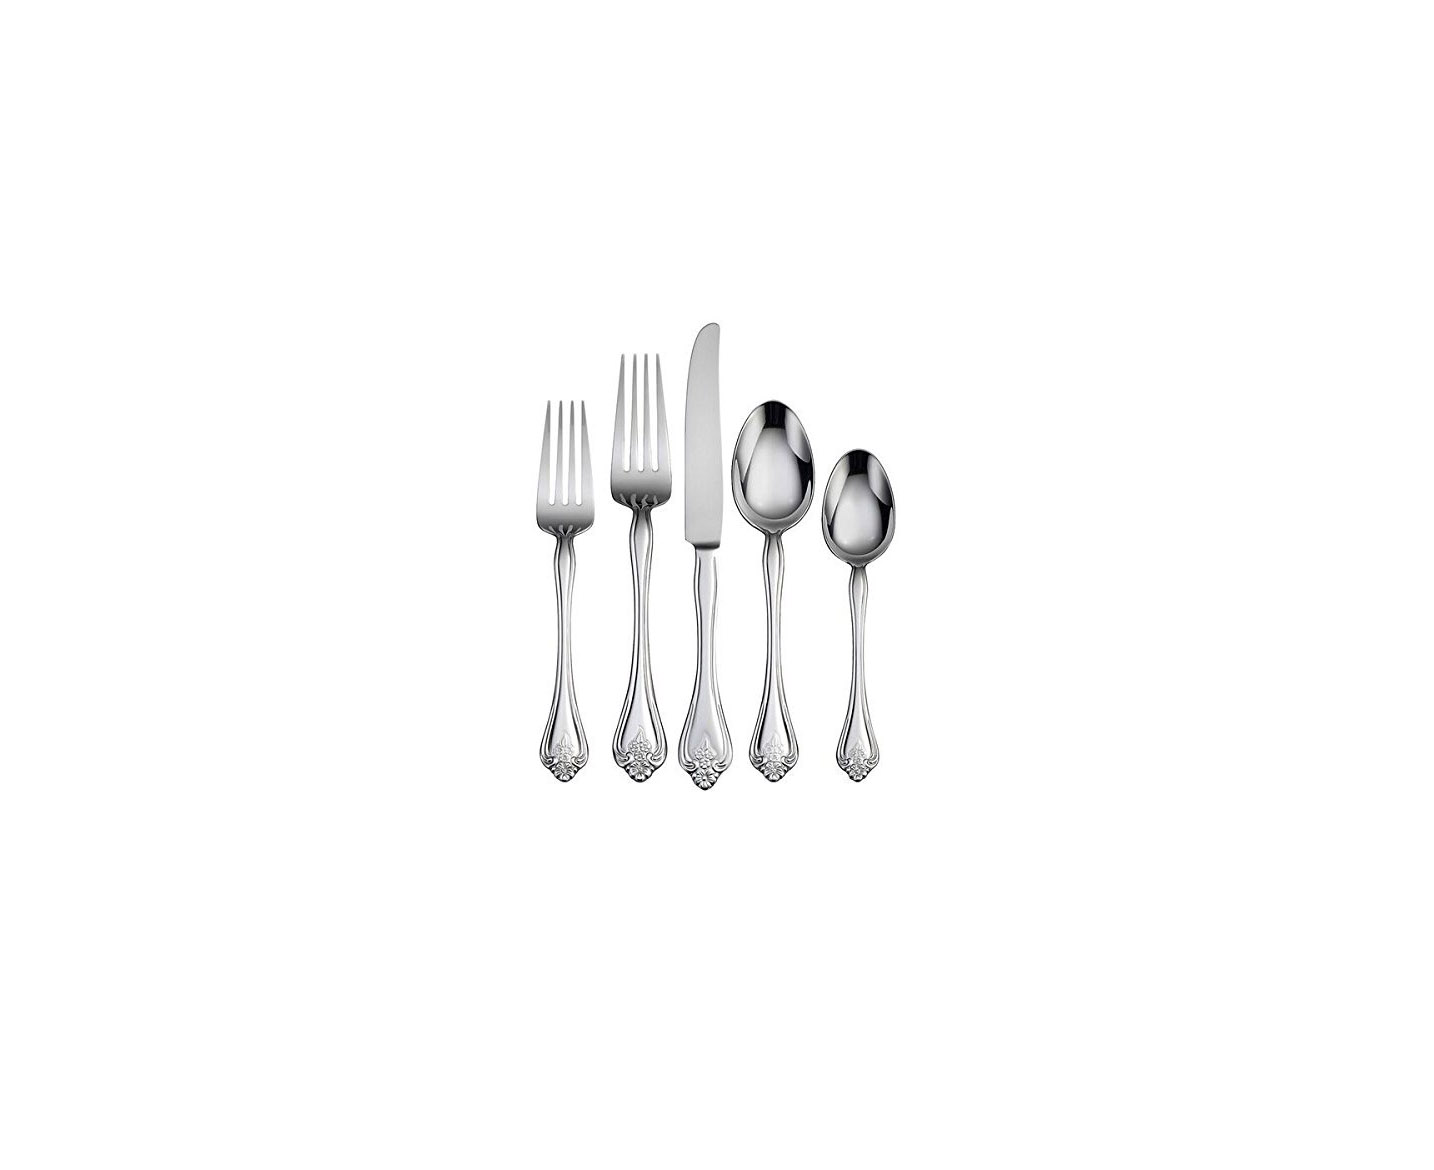 Oneida Boutonniere 30-Piece Flatware, Service for 6